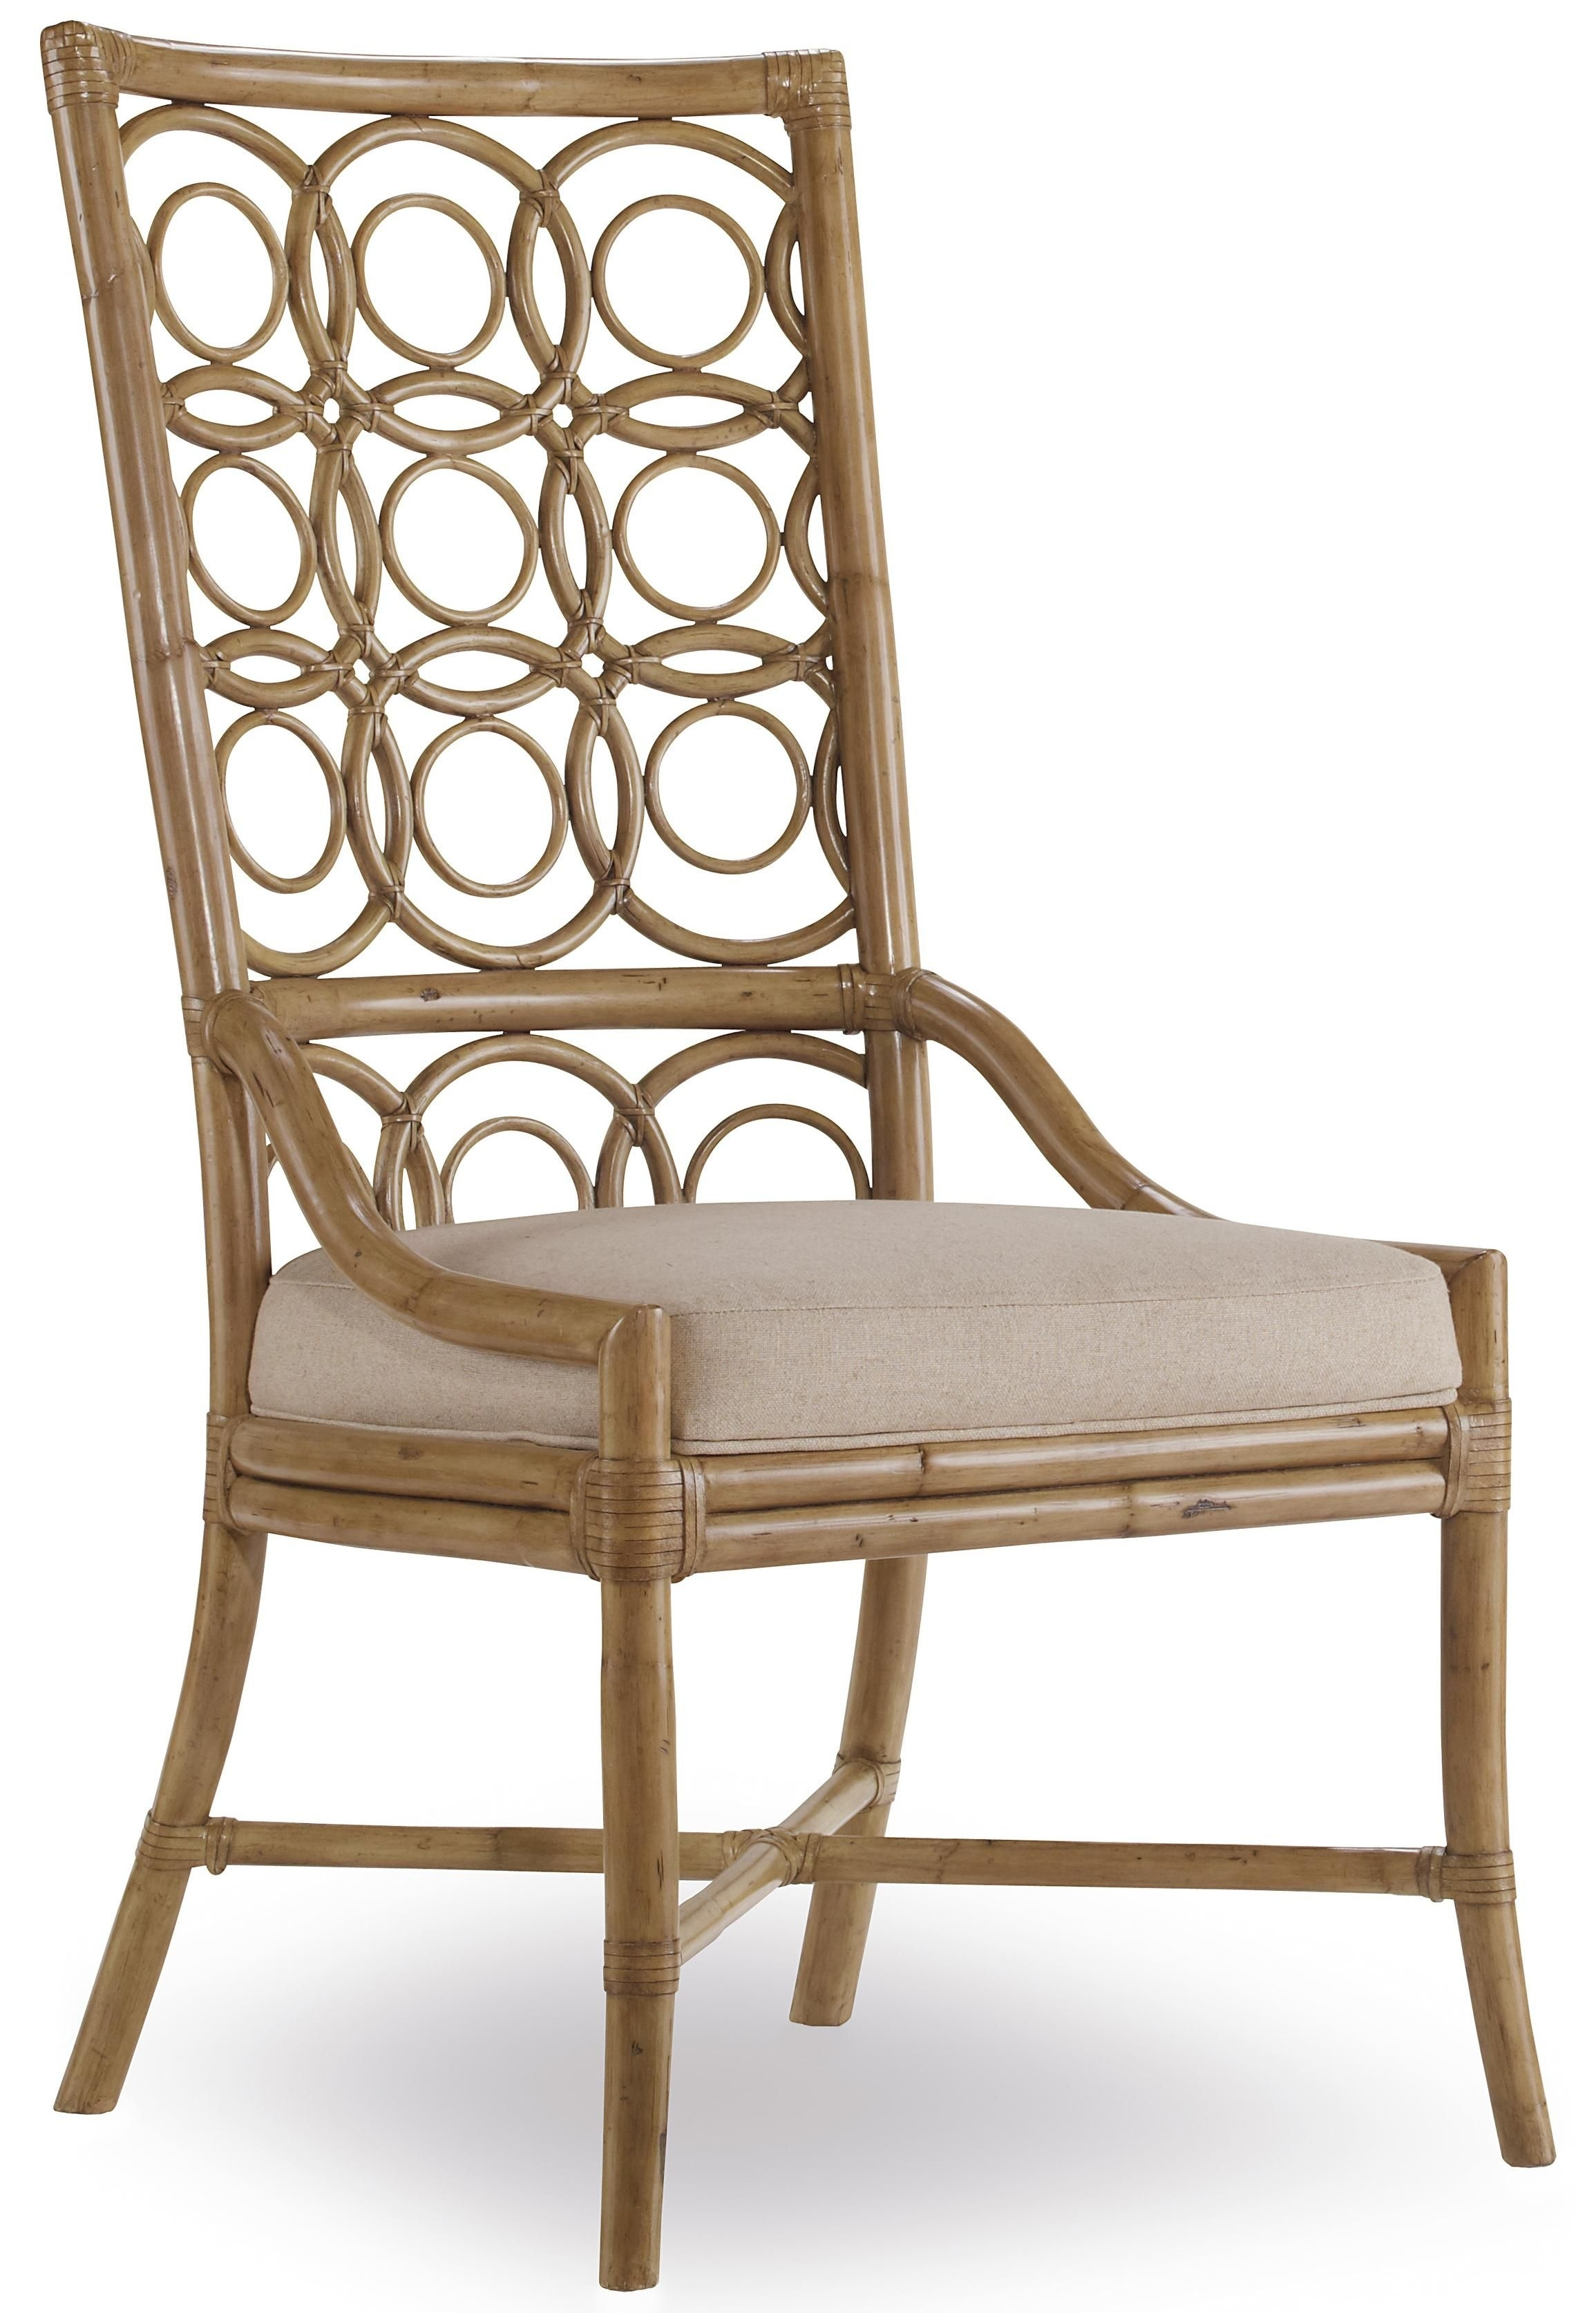 Inspiration about Well Known Magnolia Home Entwine Rattan Arm Chairs Pertaining To Sanctuary Rattan Side Chairhooker Furniture Available At Stc (#4 of 20)